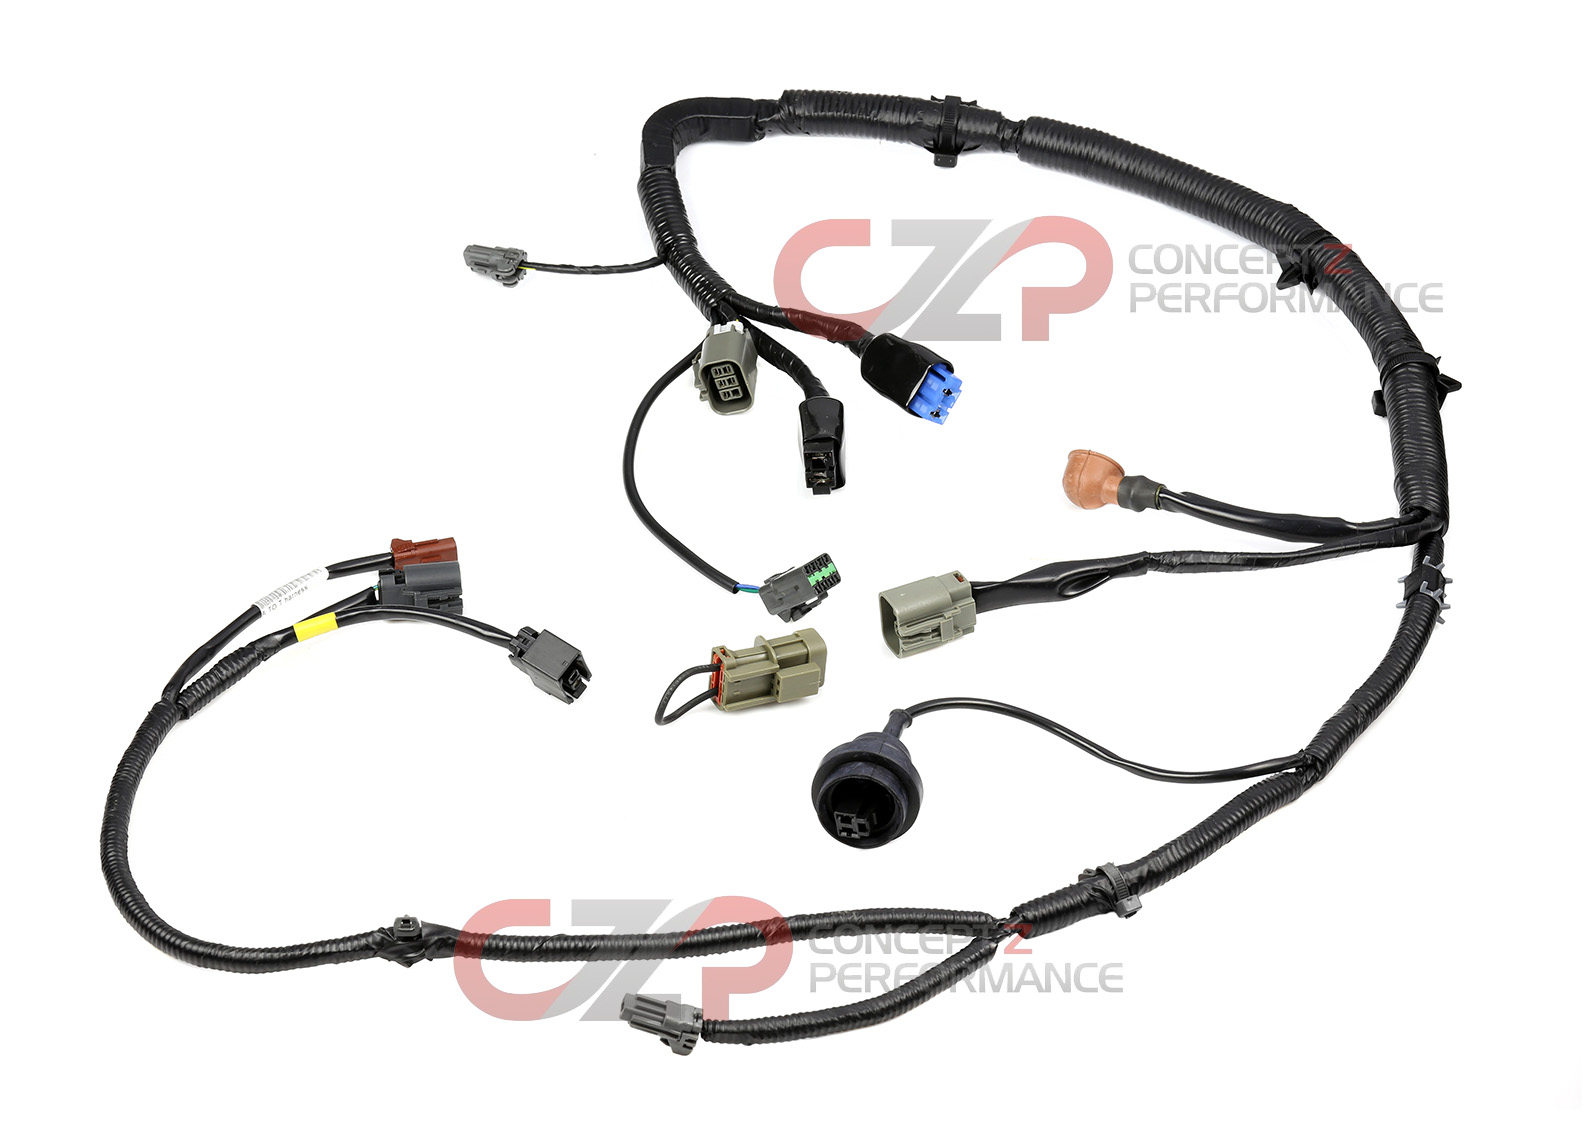 wiring specialties alternator to transmission harness automatic at rh conceptzperformance com alternator wiring harness 02 jetta alternator wiring harness bolt broken